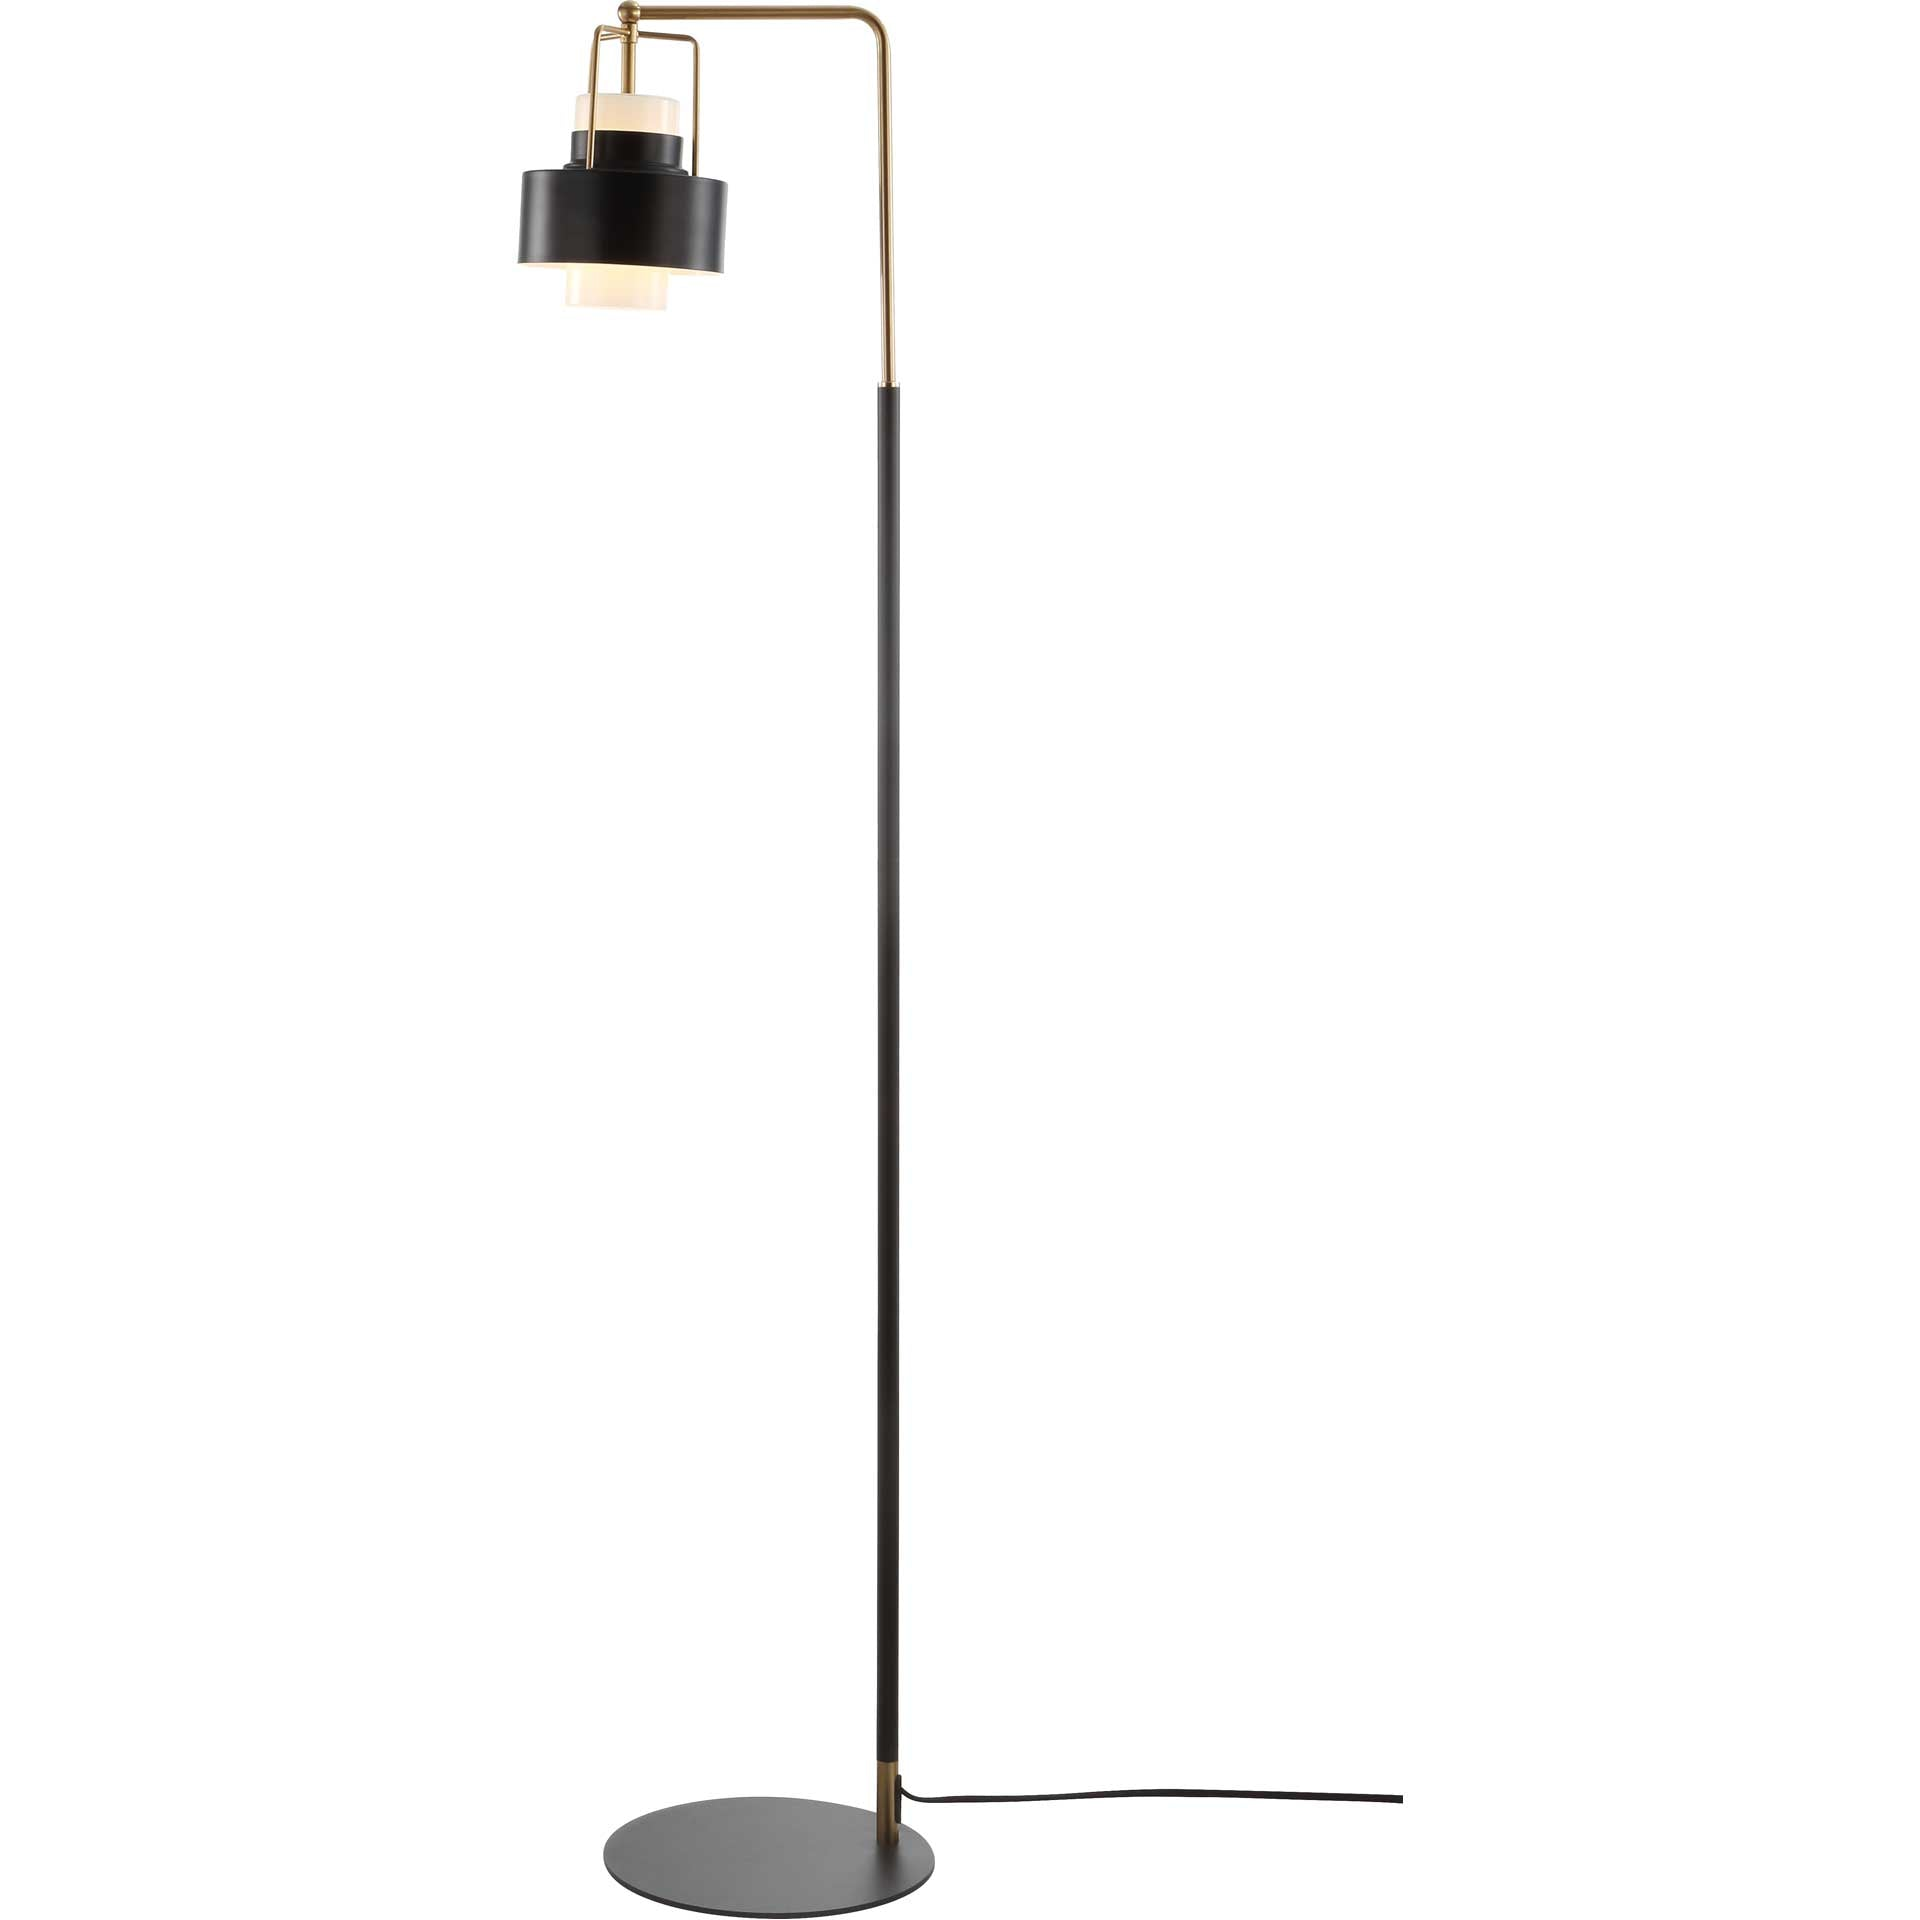 Brayden Floor Lamp Black/Brass Gold